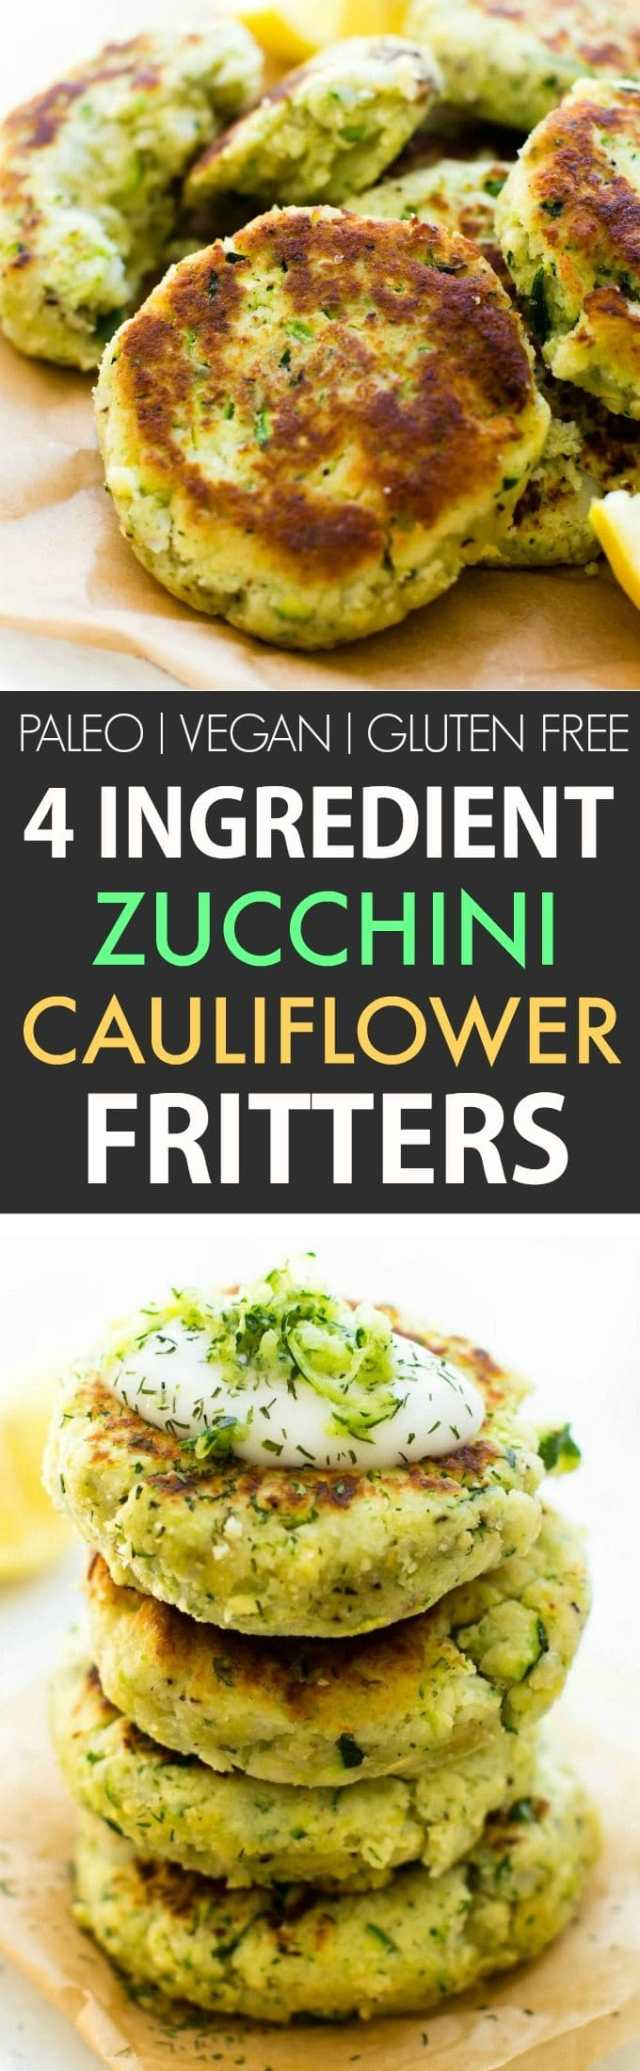 4 Ingredient Zucchini Cauliflower Fritters (V, GF, P, DF)- Crispy, easy and oil-free, these veggie packed cauliflower rice fritters need just four ingredients and 5 minutes to whip up! A kid-friendly meat-free/vegetarian meal! {vegan, gluten free, paleo recipe}- thebigmansworld.com